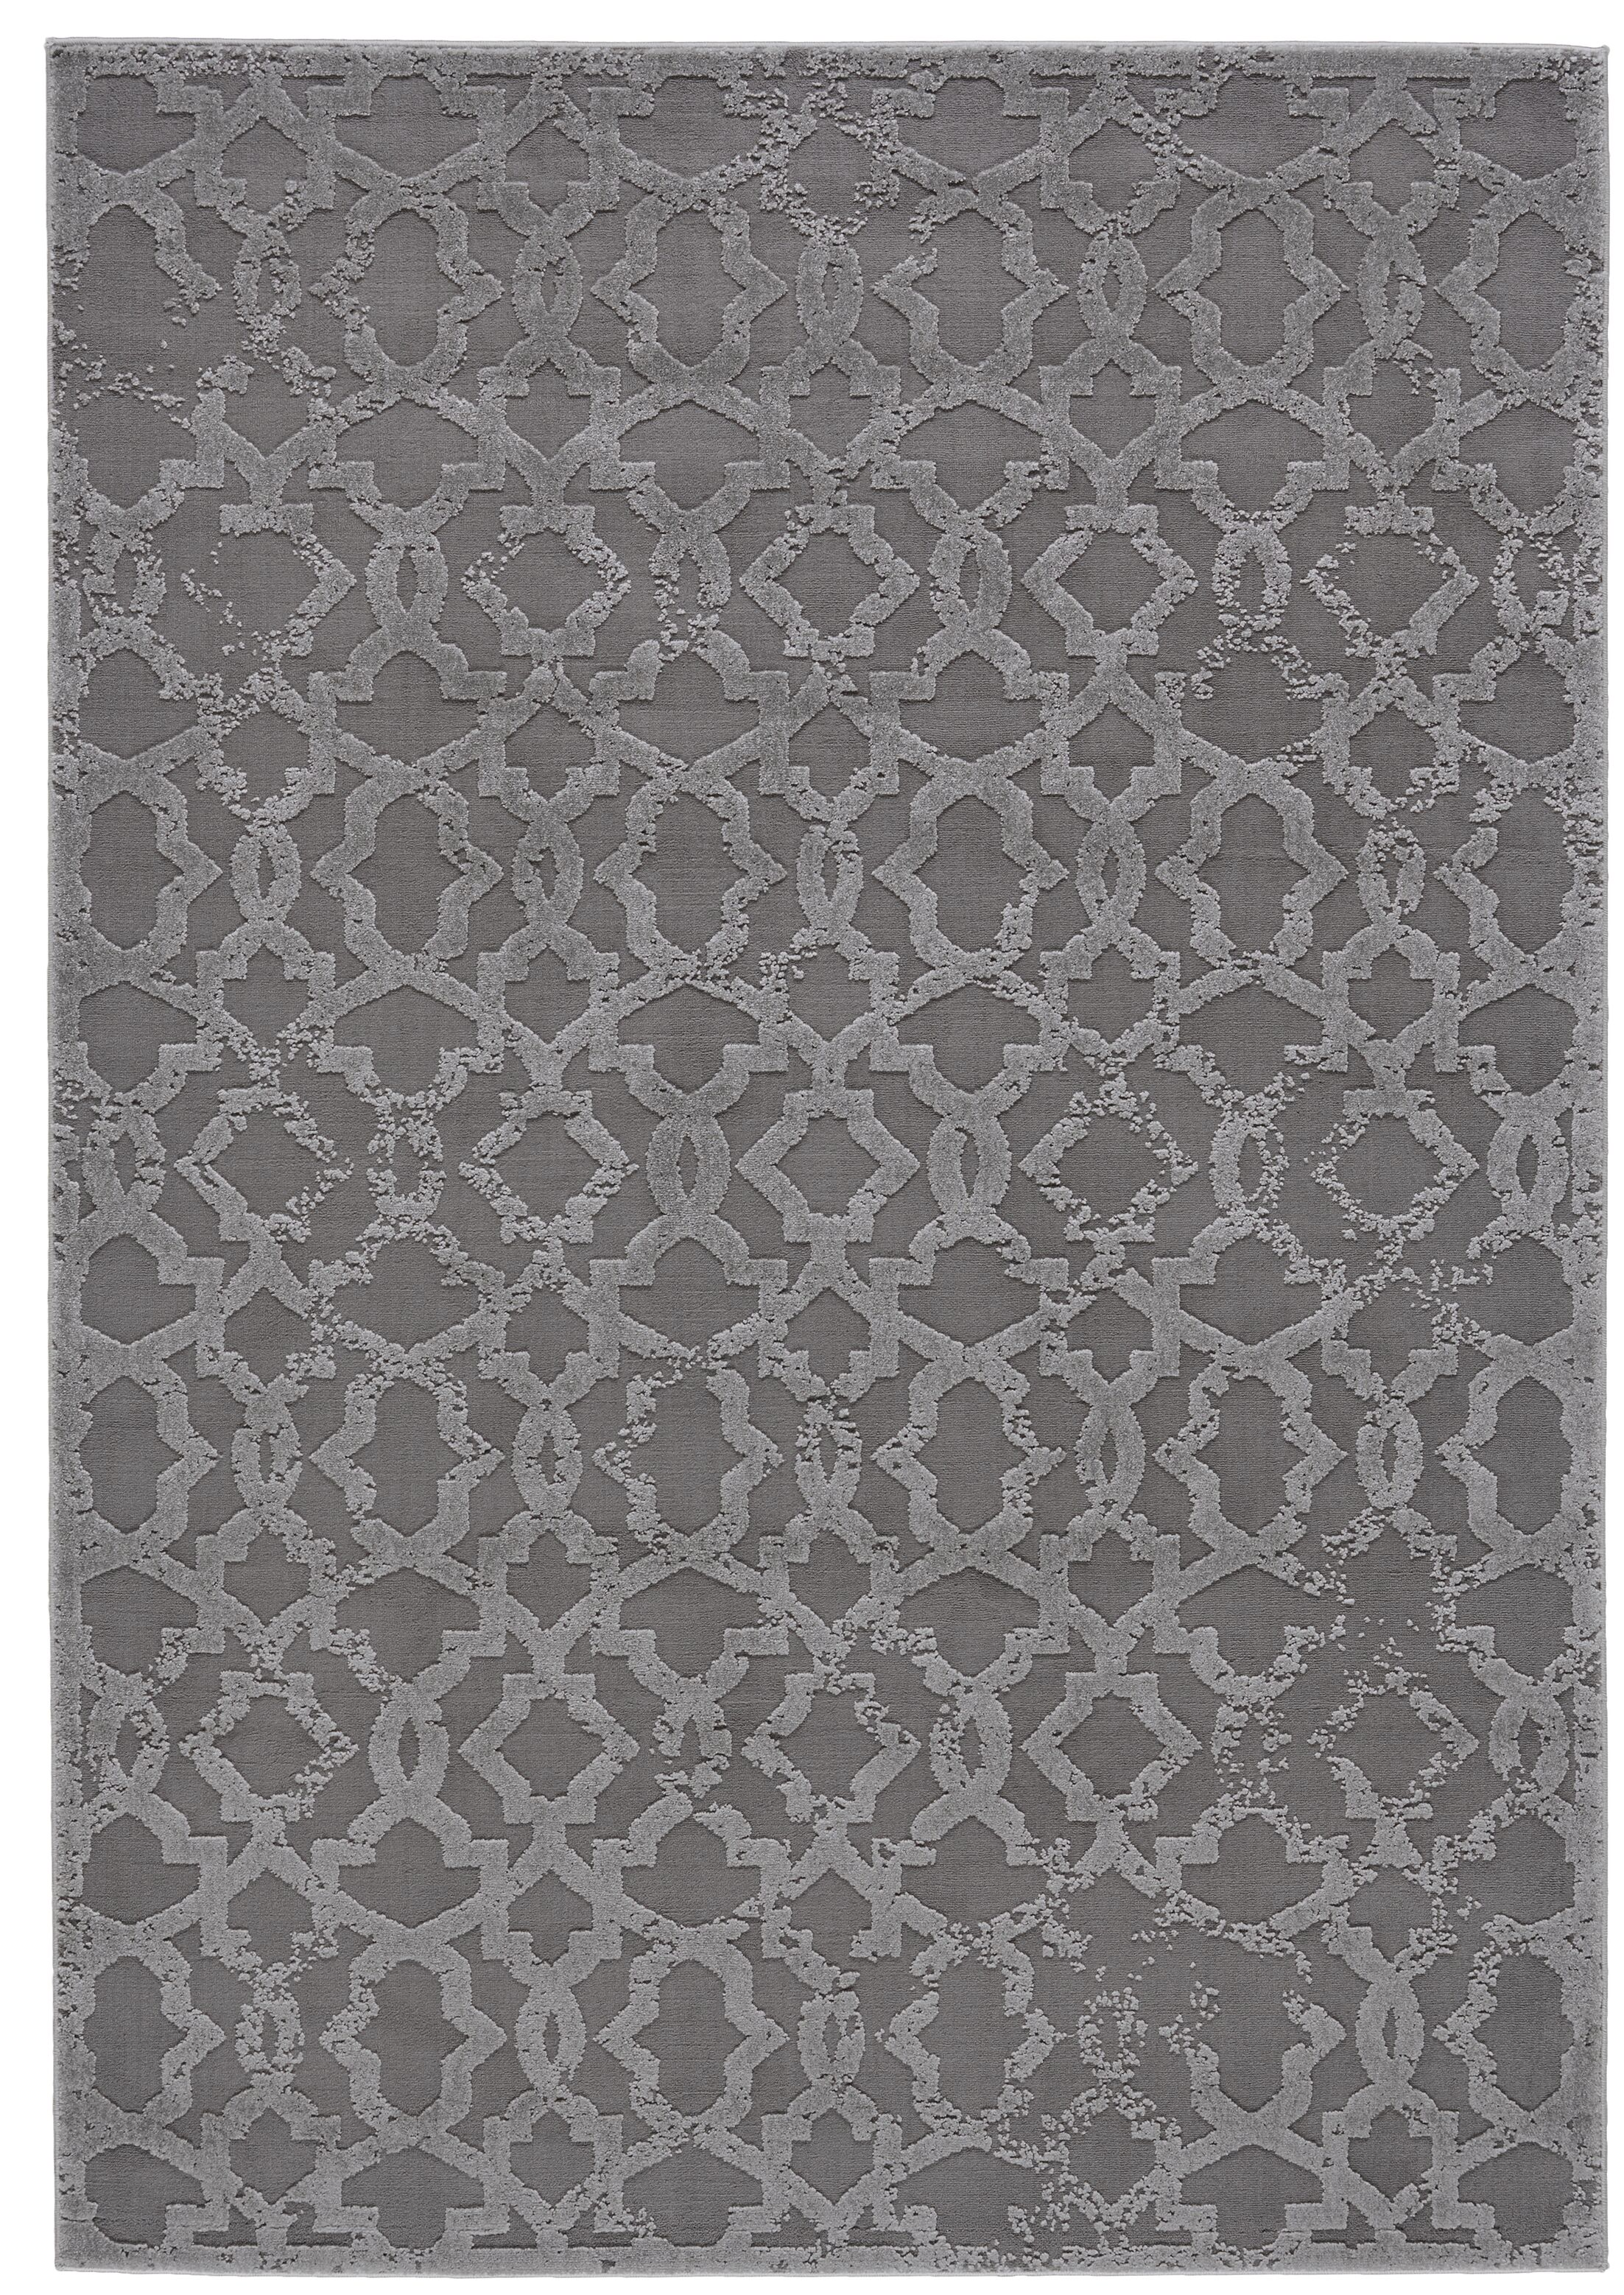 Chevalier Silver Area Rug Rug Size: Runner 2'1 x 7'1